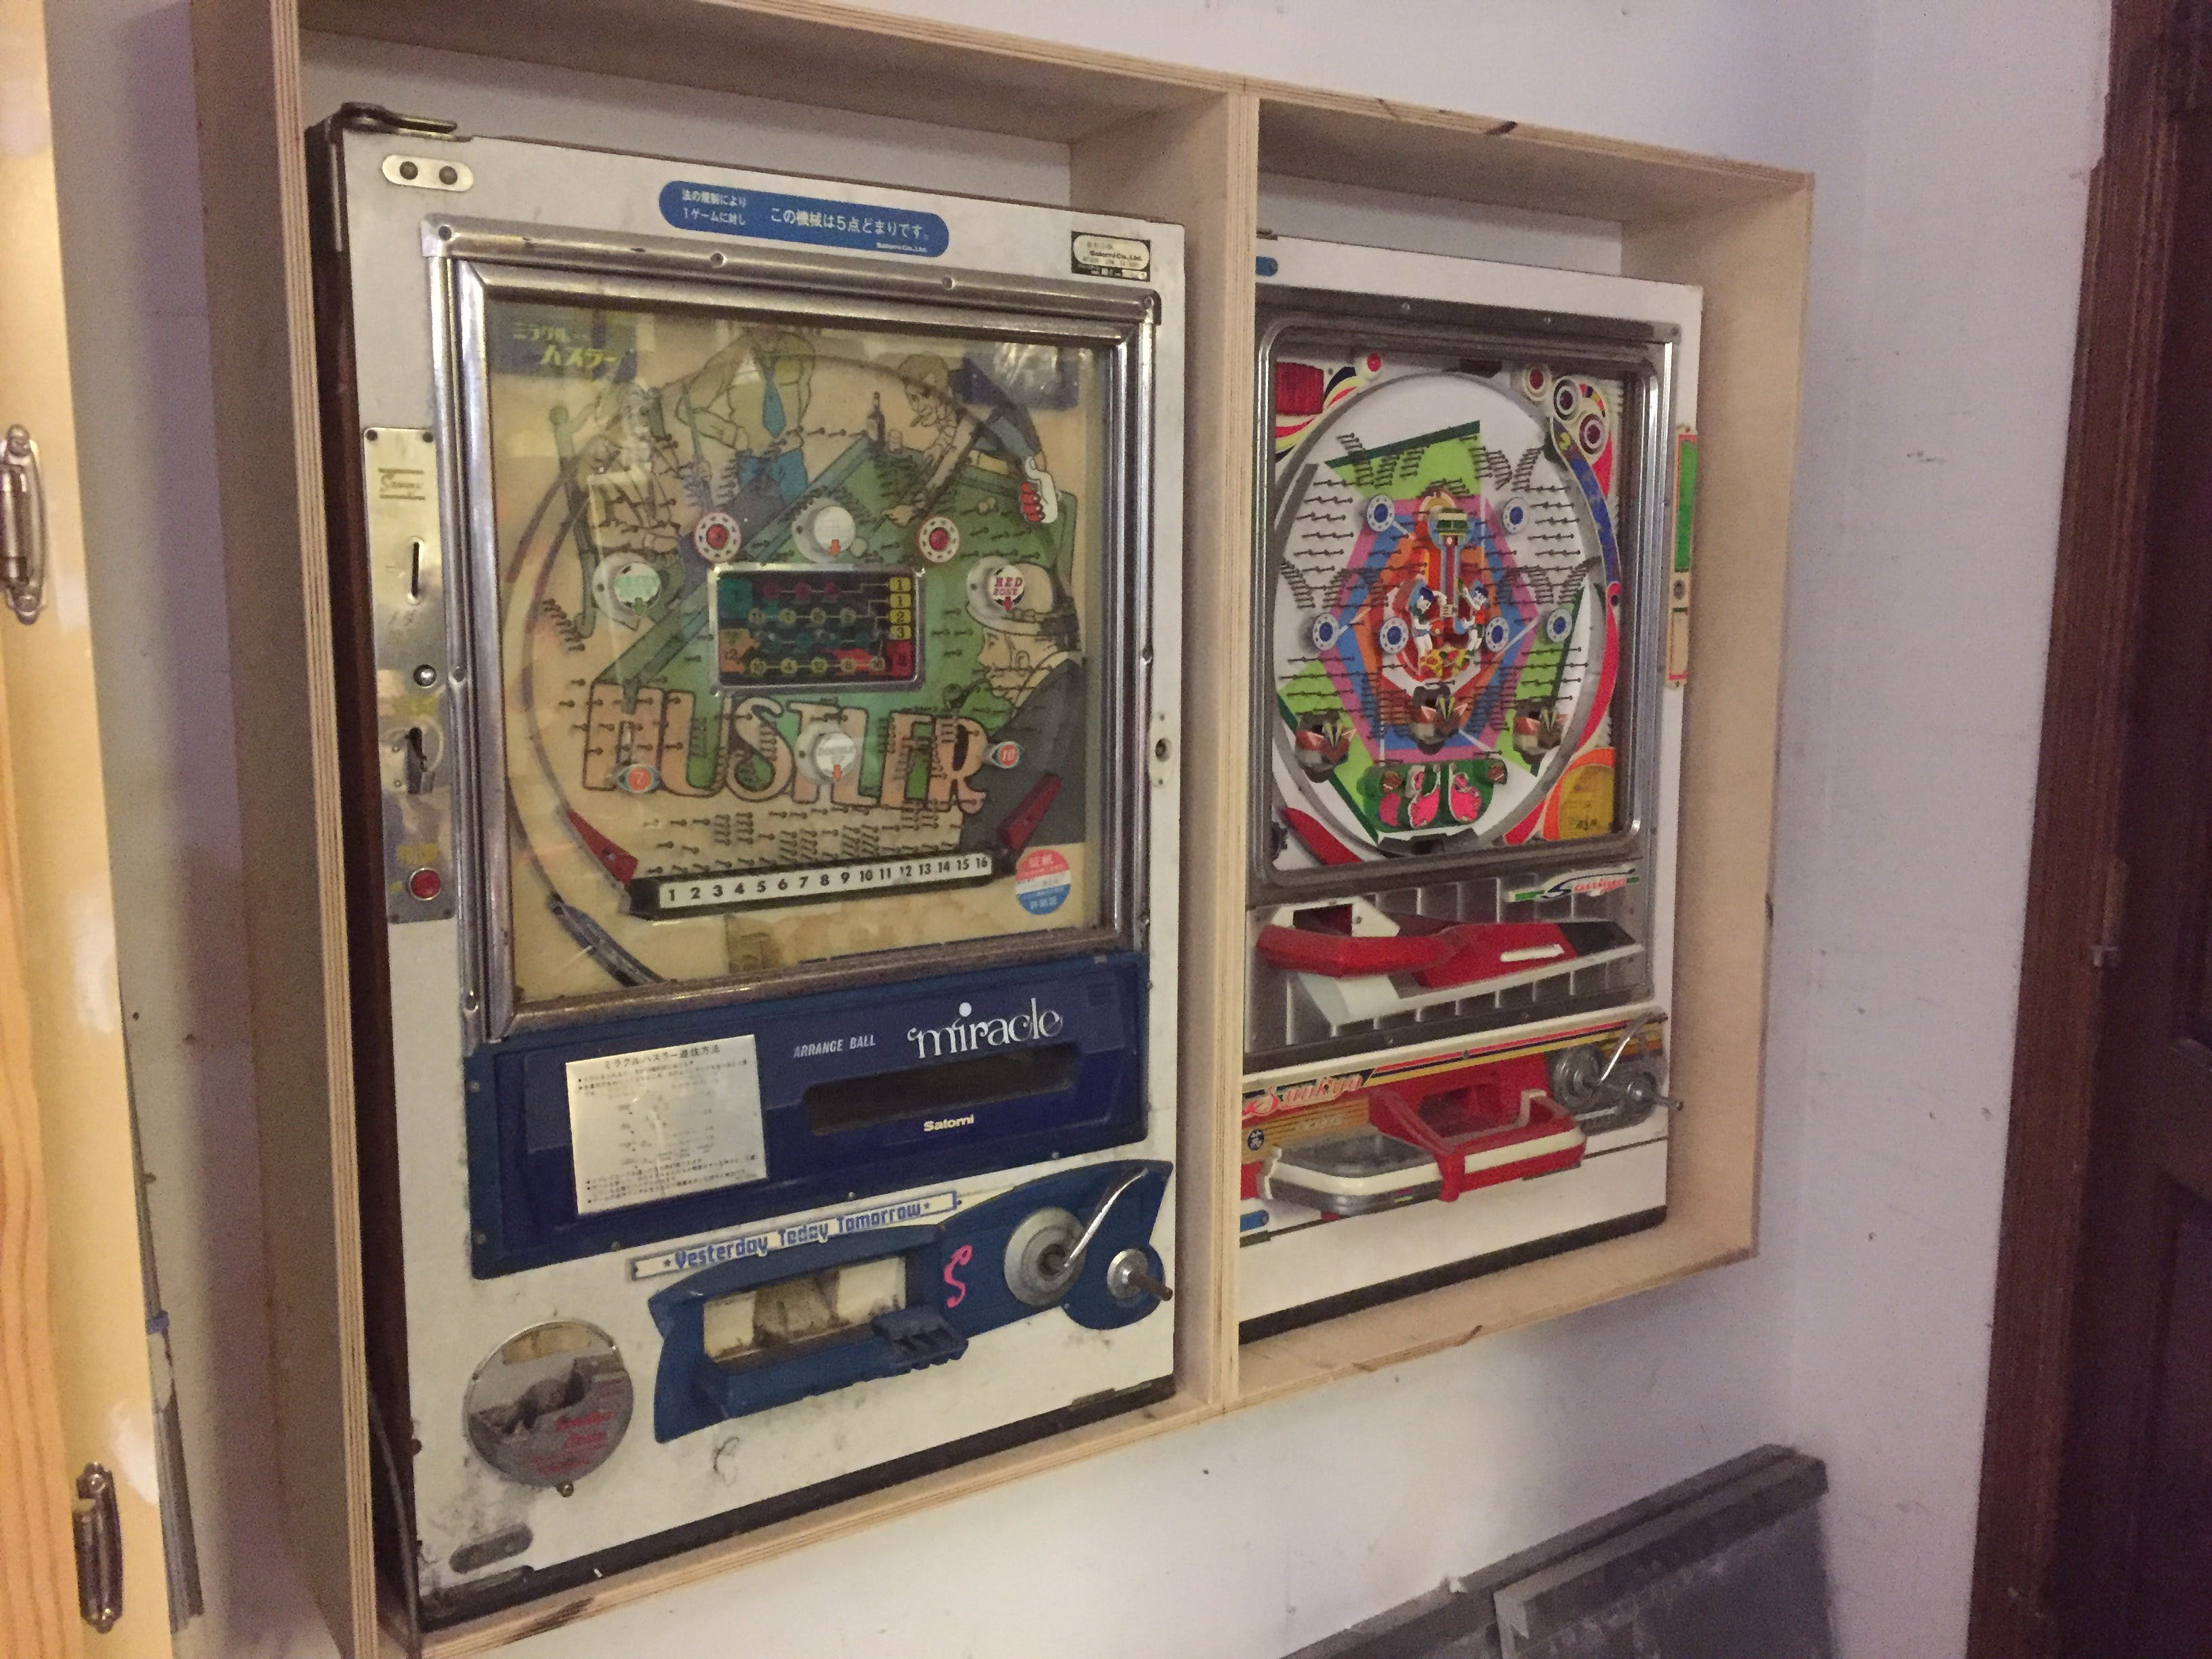 Pachinko Arrange Ball Restoration